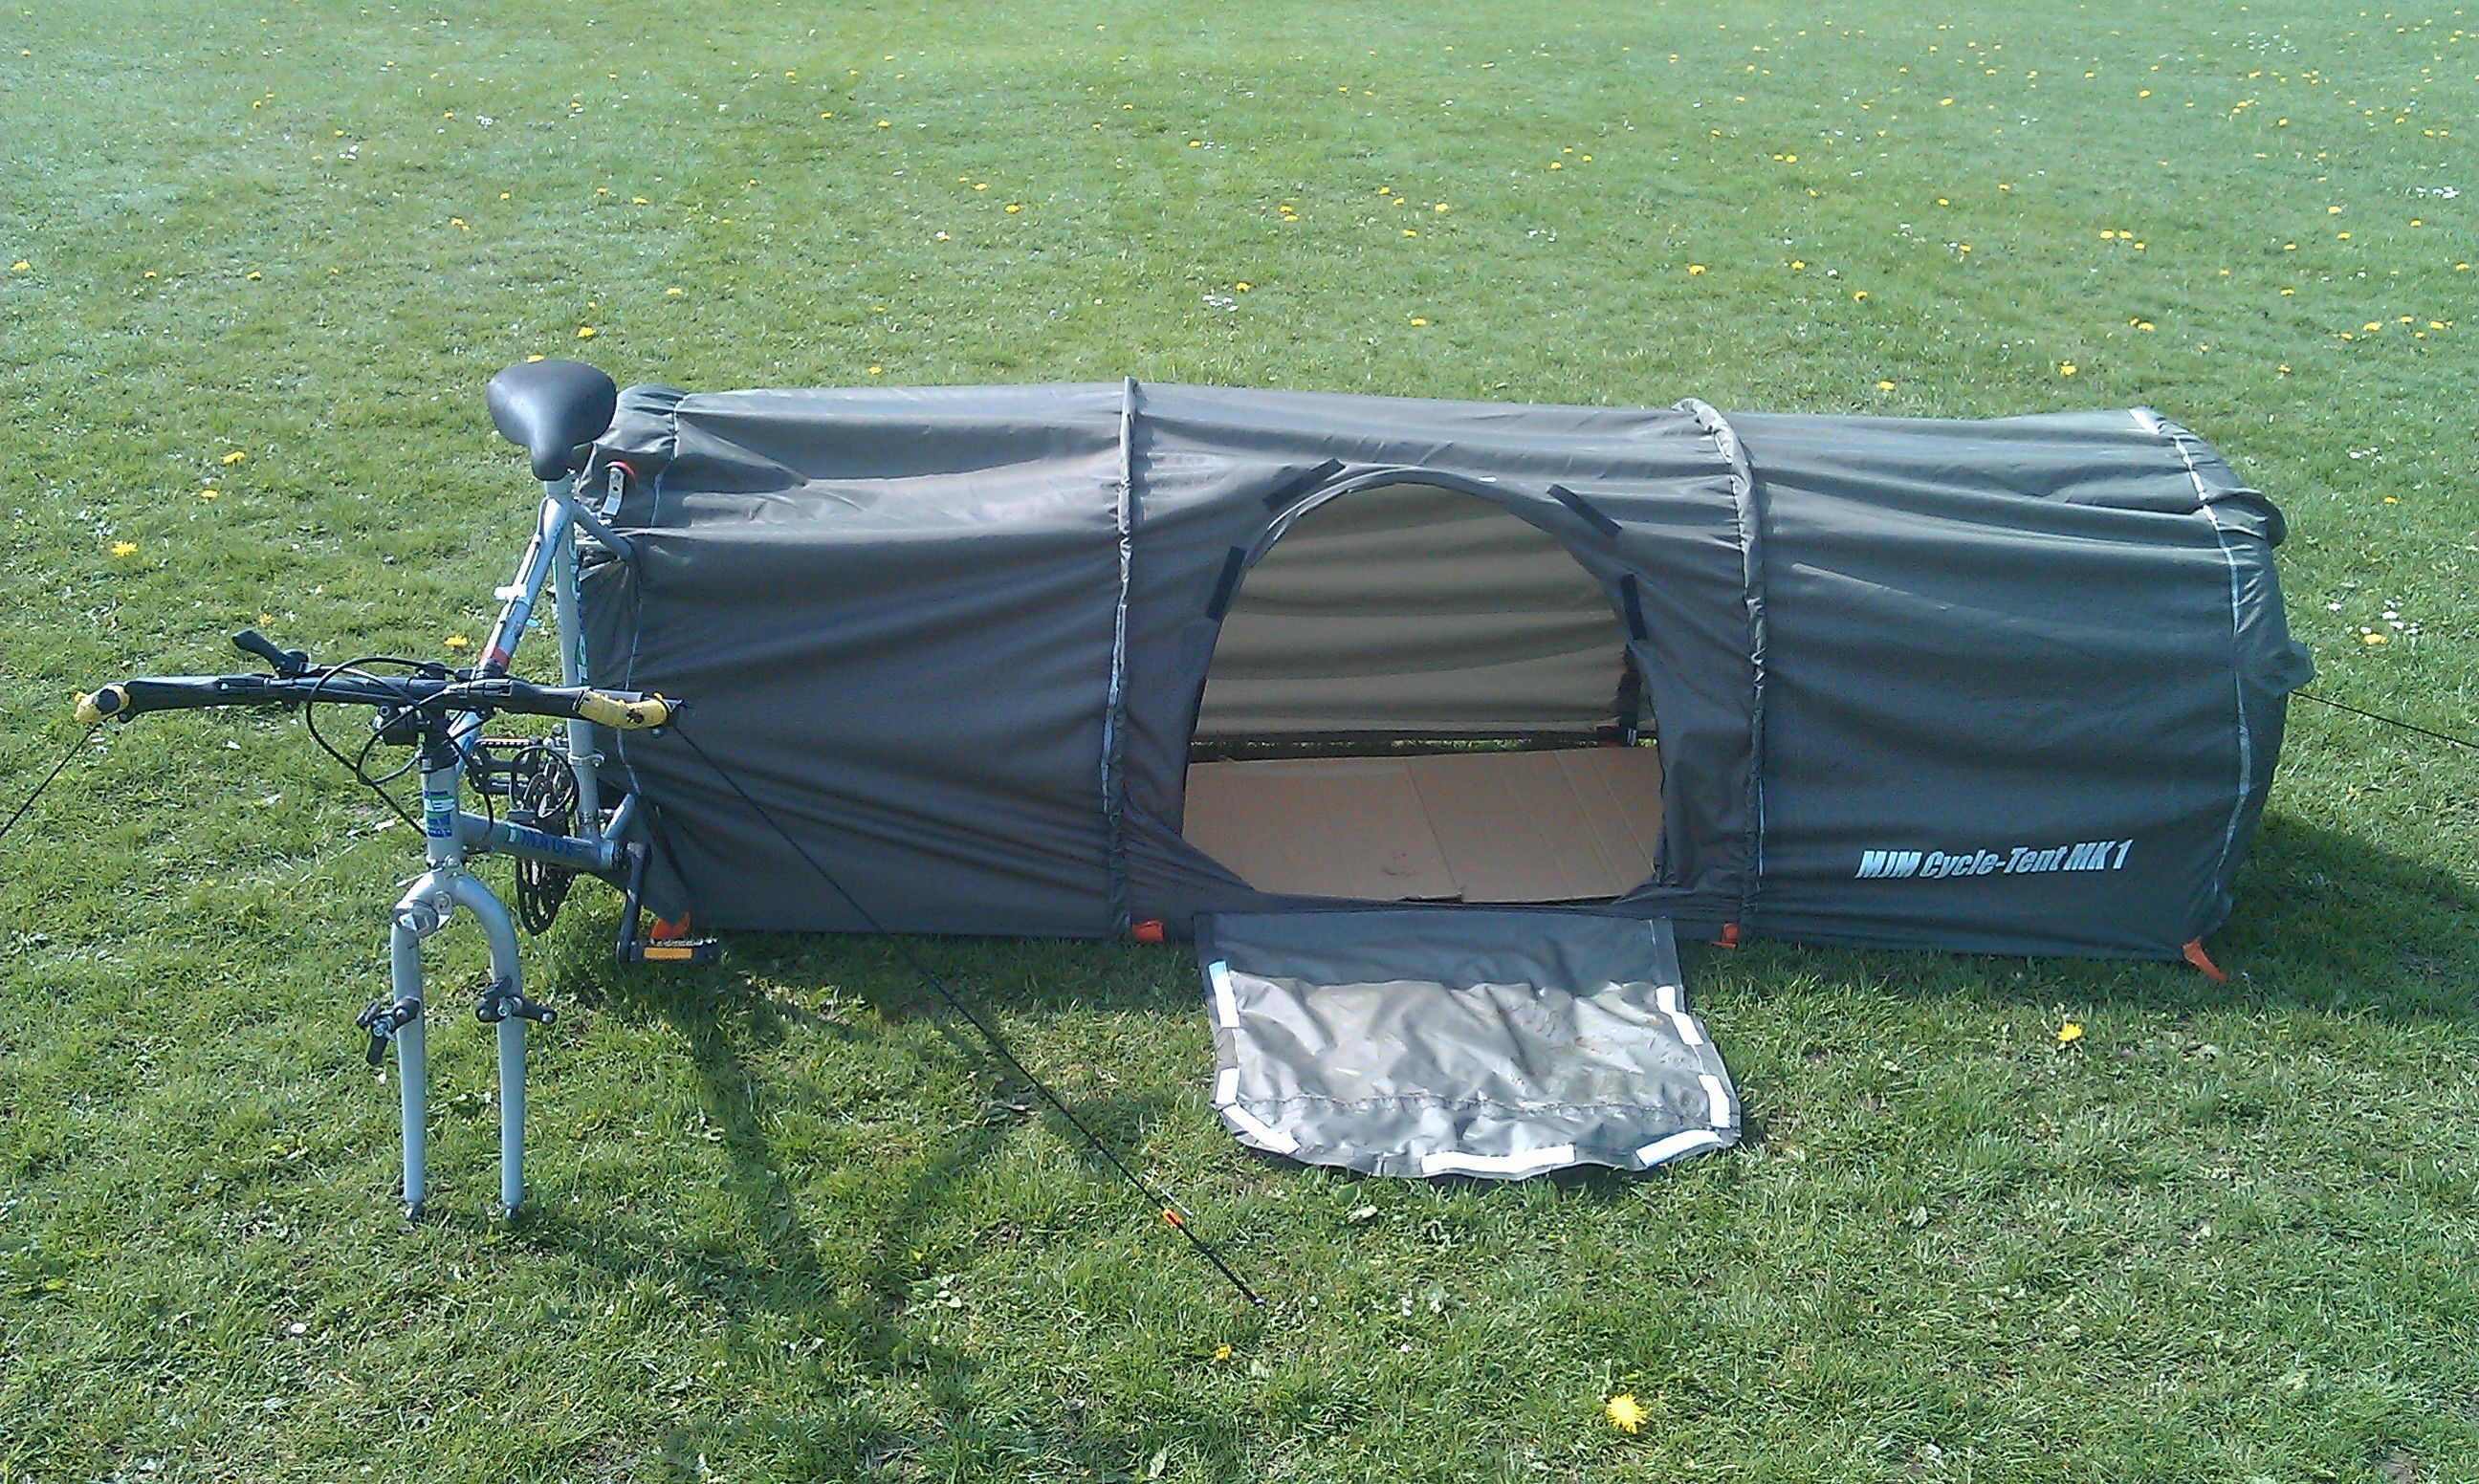 Bike Tent - Imgur This is the MJM cycling tent. The whole idea is that & Bike Tent - Imgur This is the MJM cycling tent. The whole idea is ...